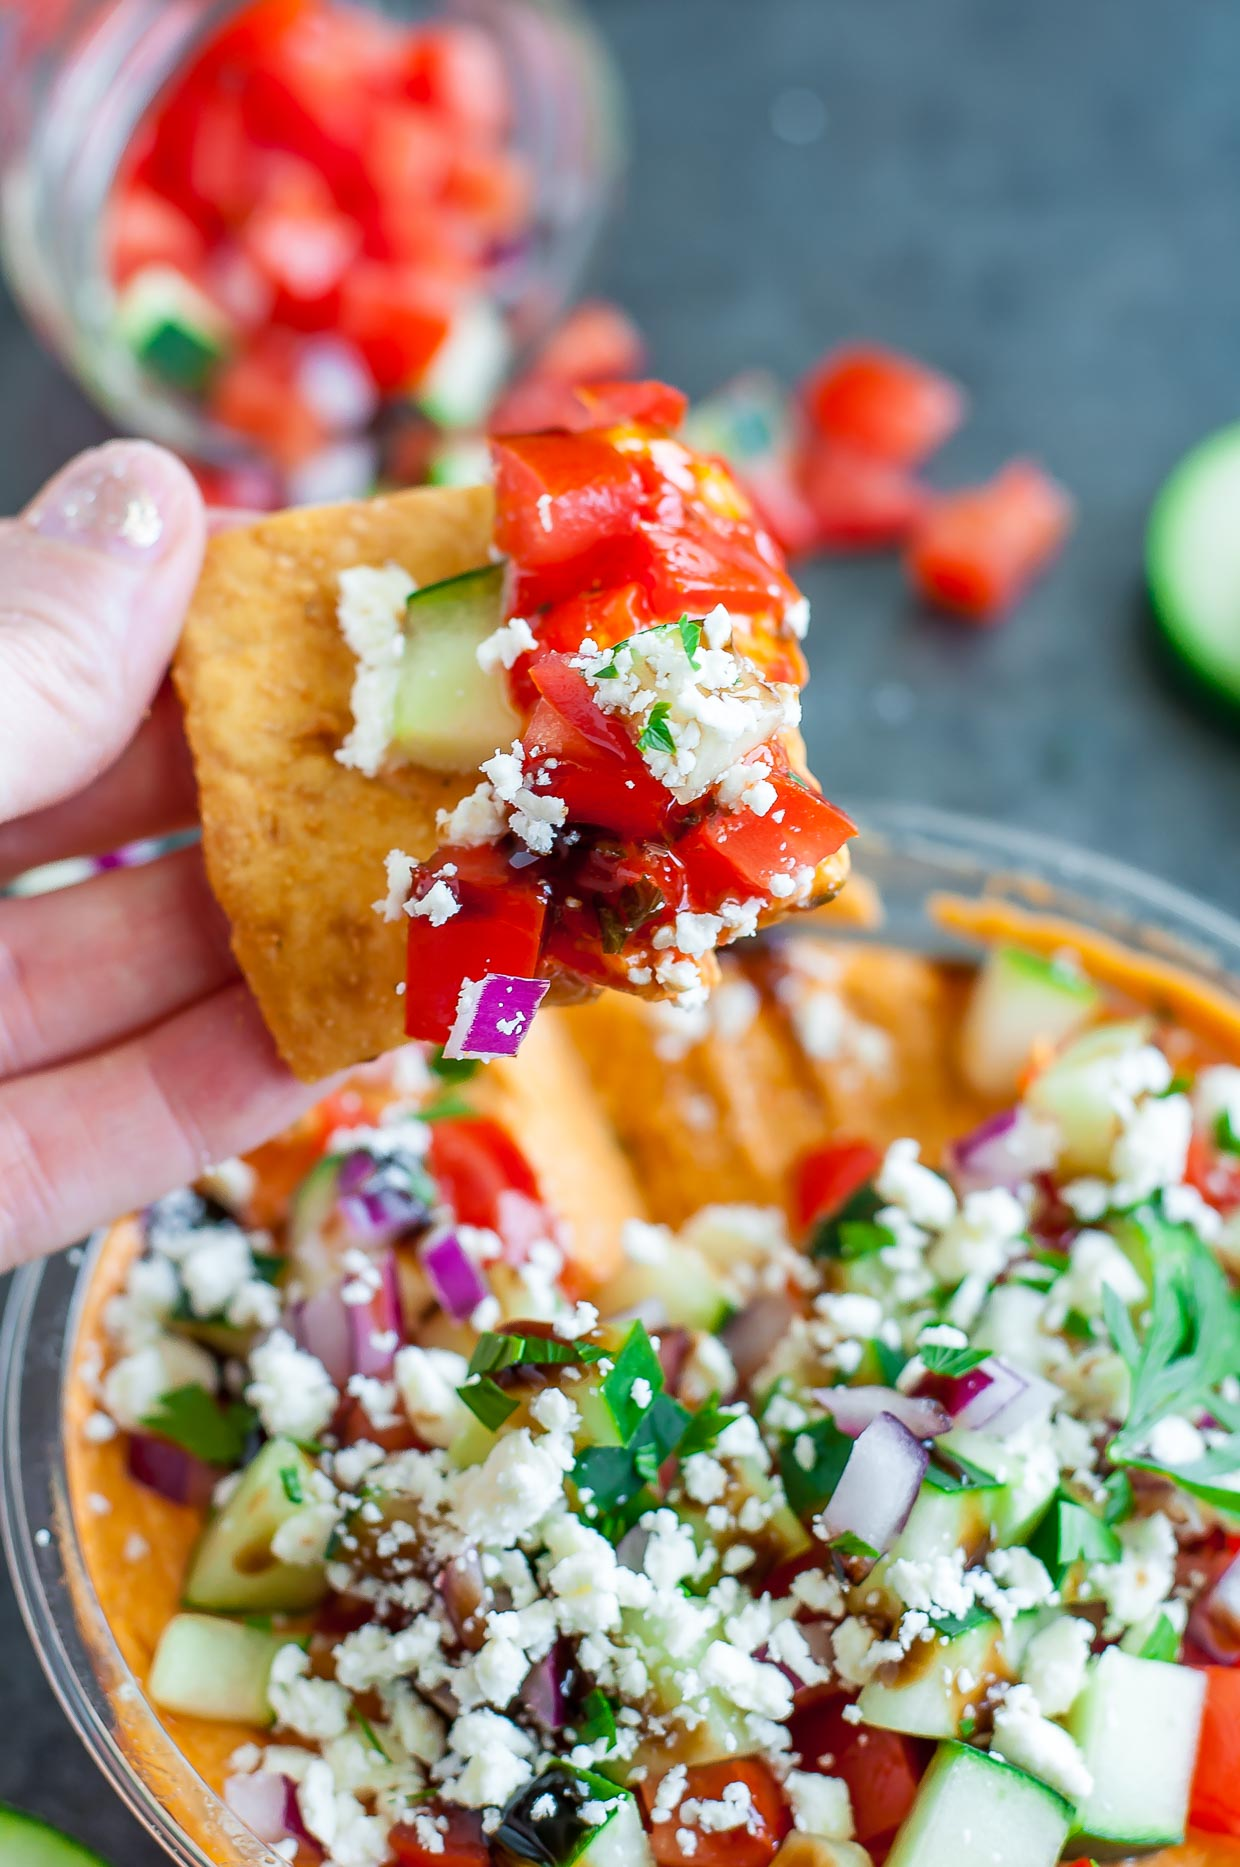 Take store bought bean dip from hummus to YUMMUS with this deliciously speedy shortcut. Tasty hummus is piled high with a mountain of toppings including feta, cucumber, onion, parsley, and drizzled with a sweet and savory balsamic glaze.